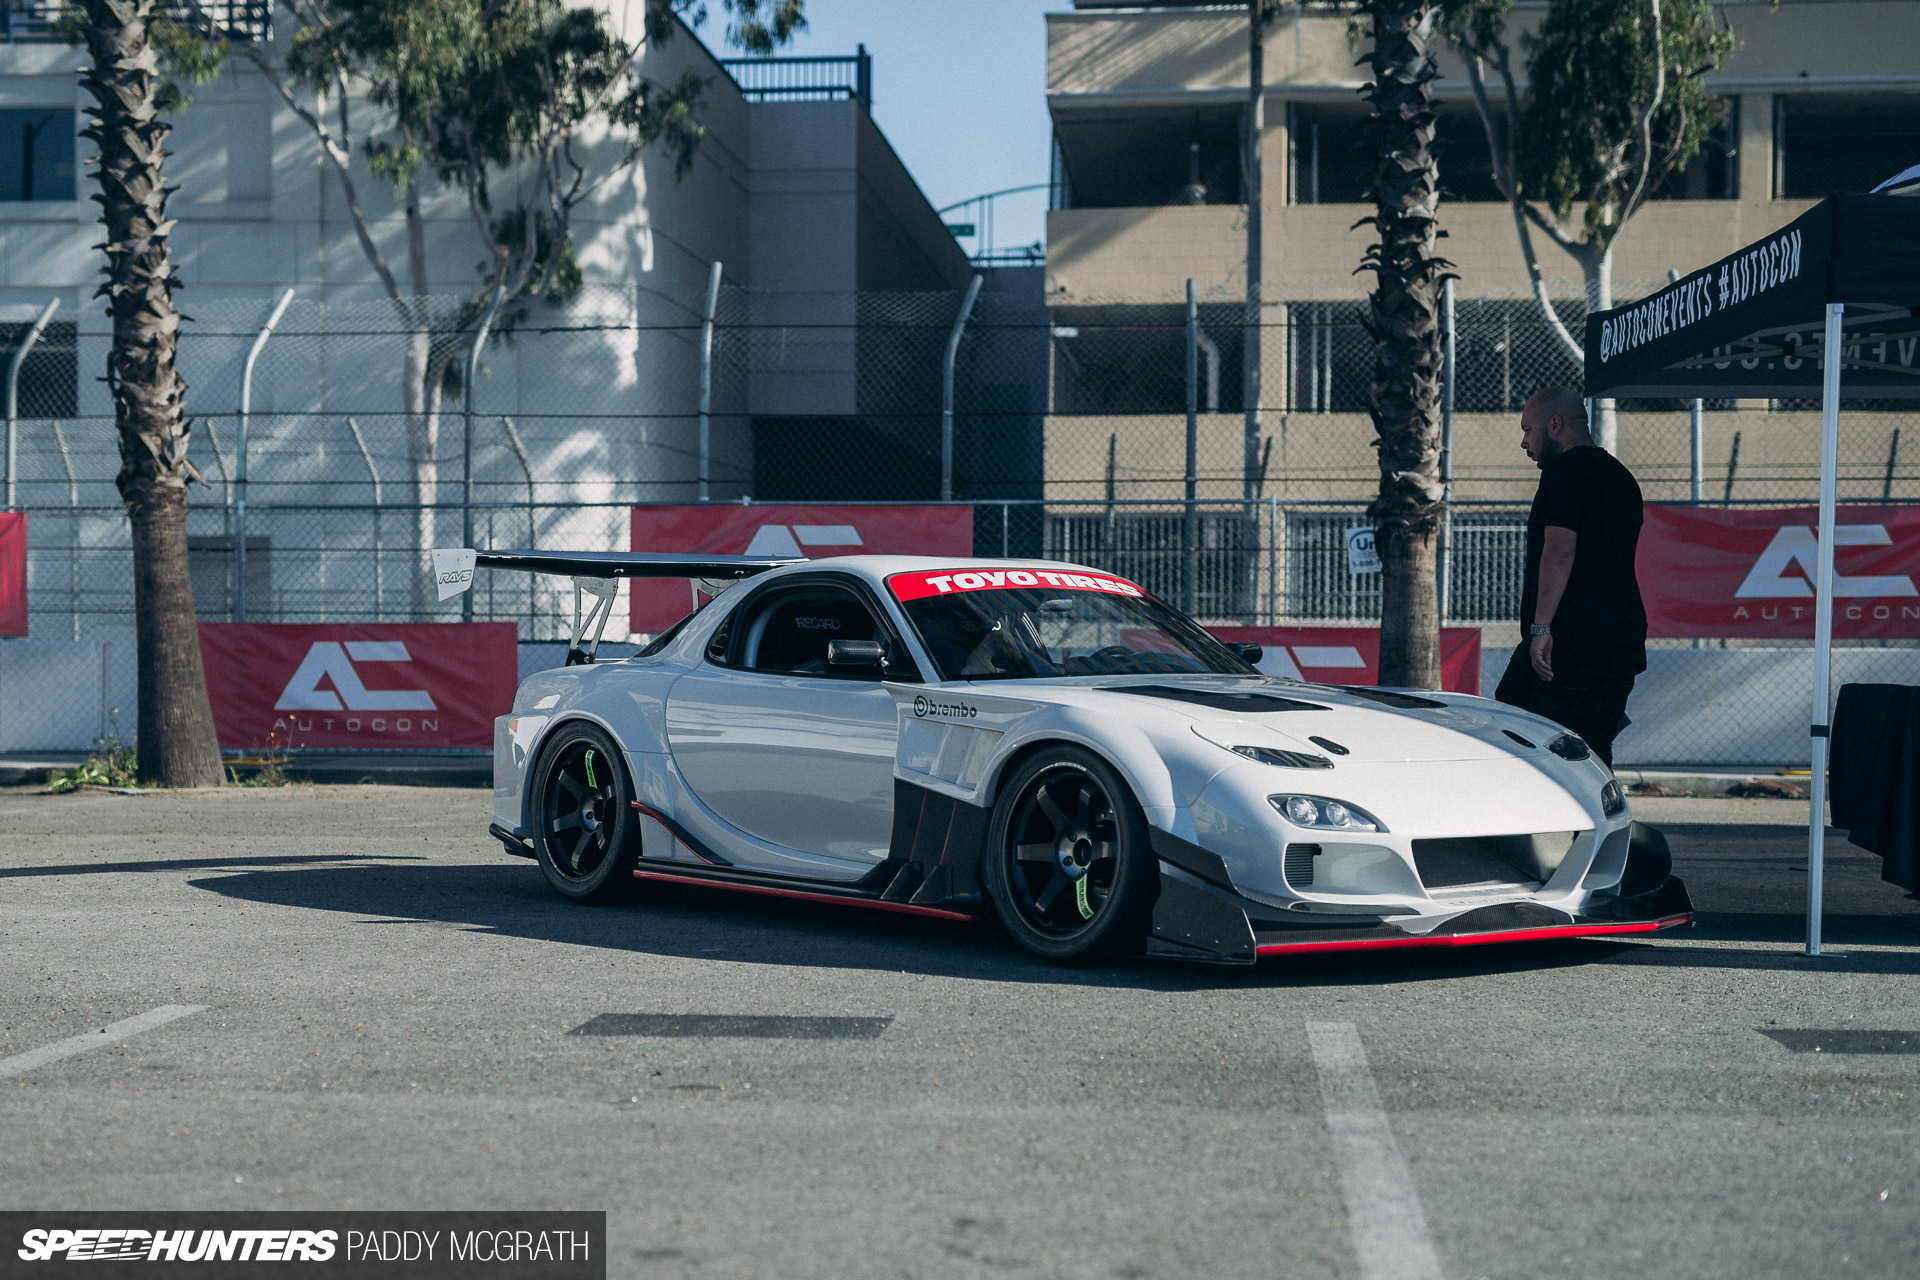 [Image: 2017-Autocon-FDLB-Speedhunters-by-Paddy-McGrath-78.jpg]